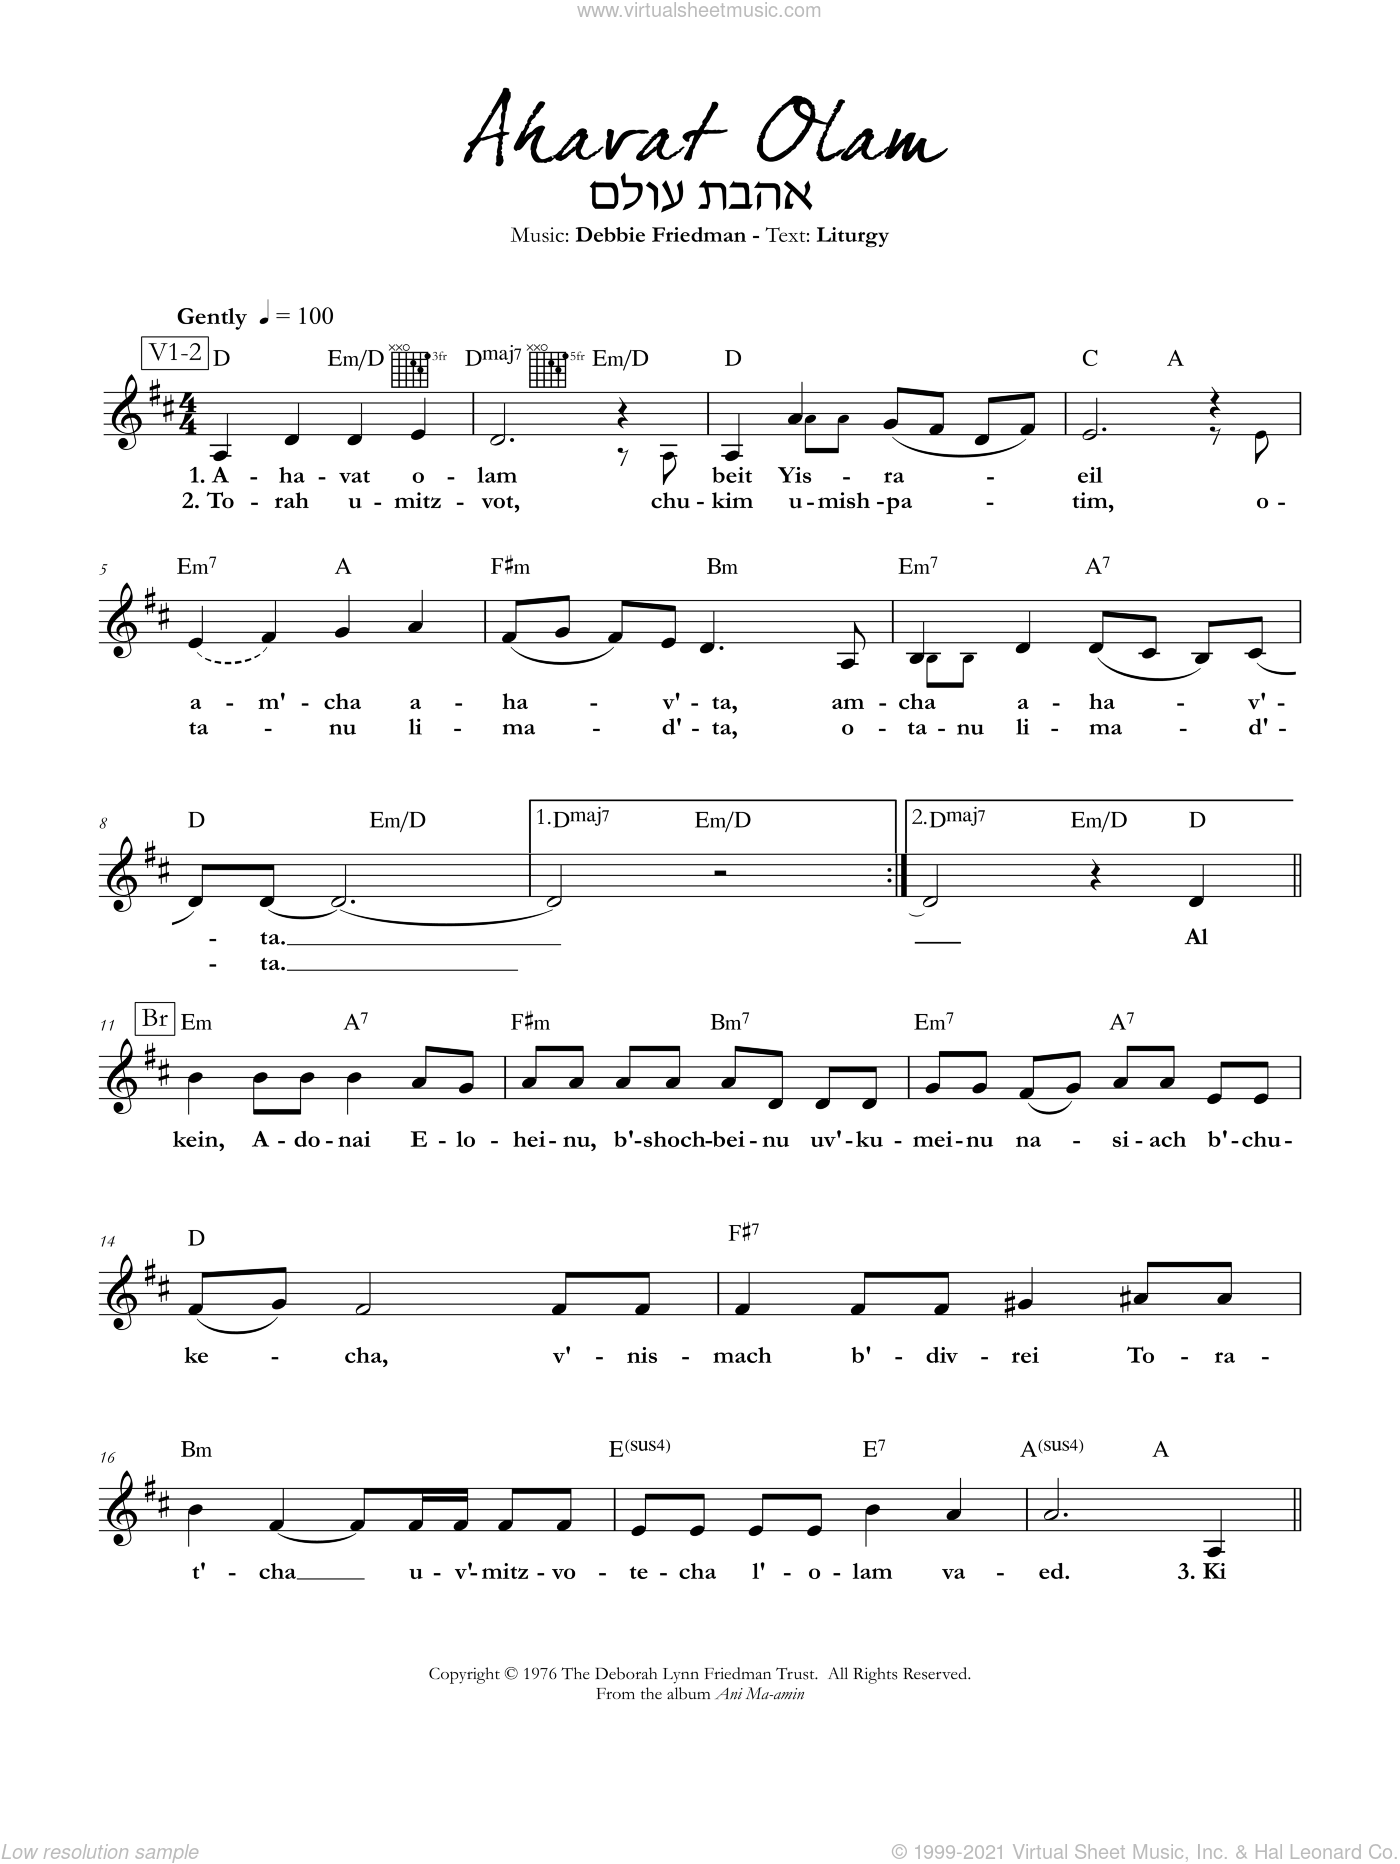 Ahavat Olam sheet music for voice and other instruments (fake book) by Debbie Friedman, intermediate skill level